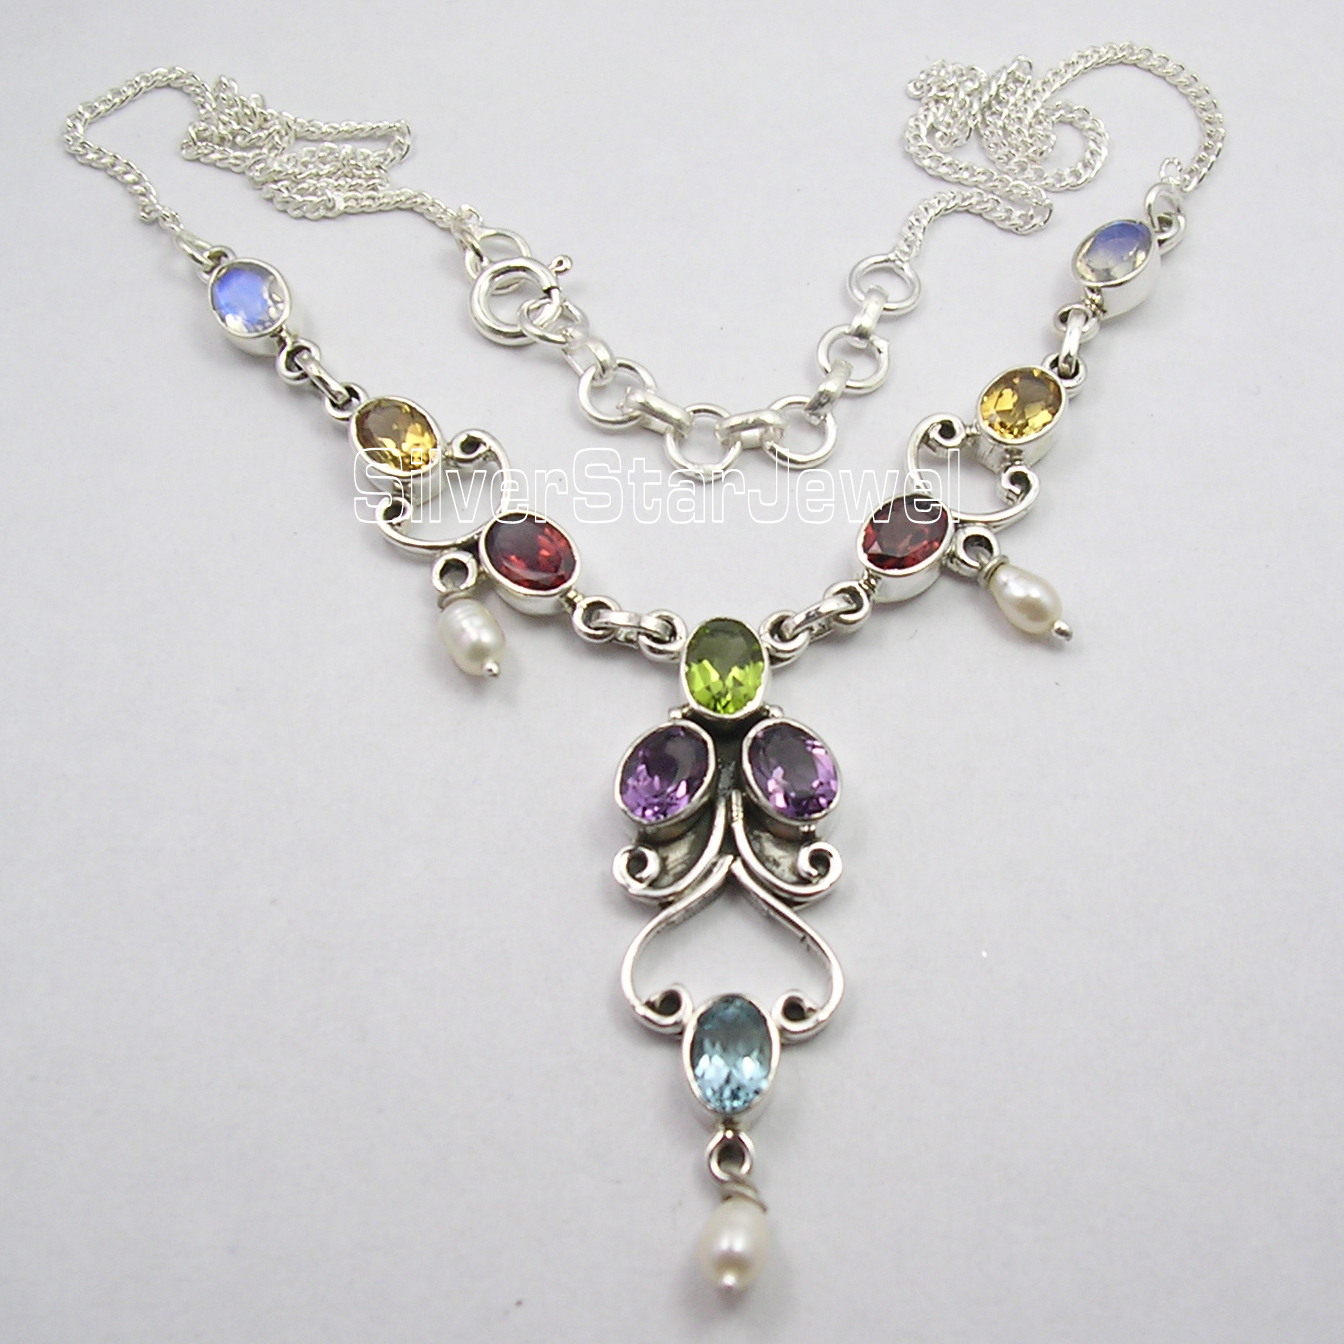 Chanti International Silver Authentic MULTISTONES HANDCRAFTED Necklace 17 5/8 Inches